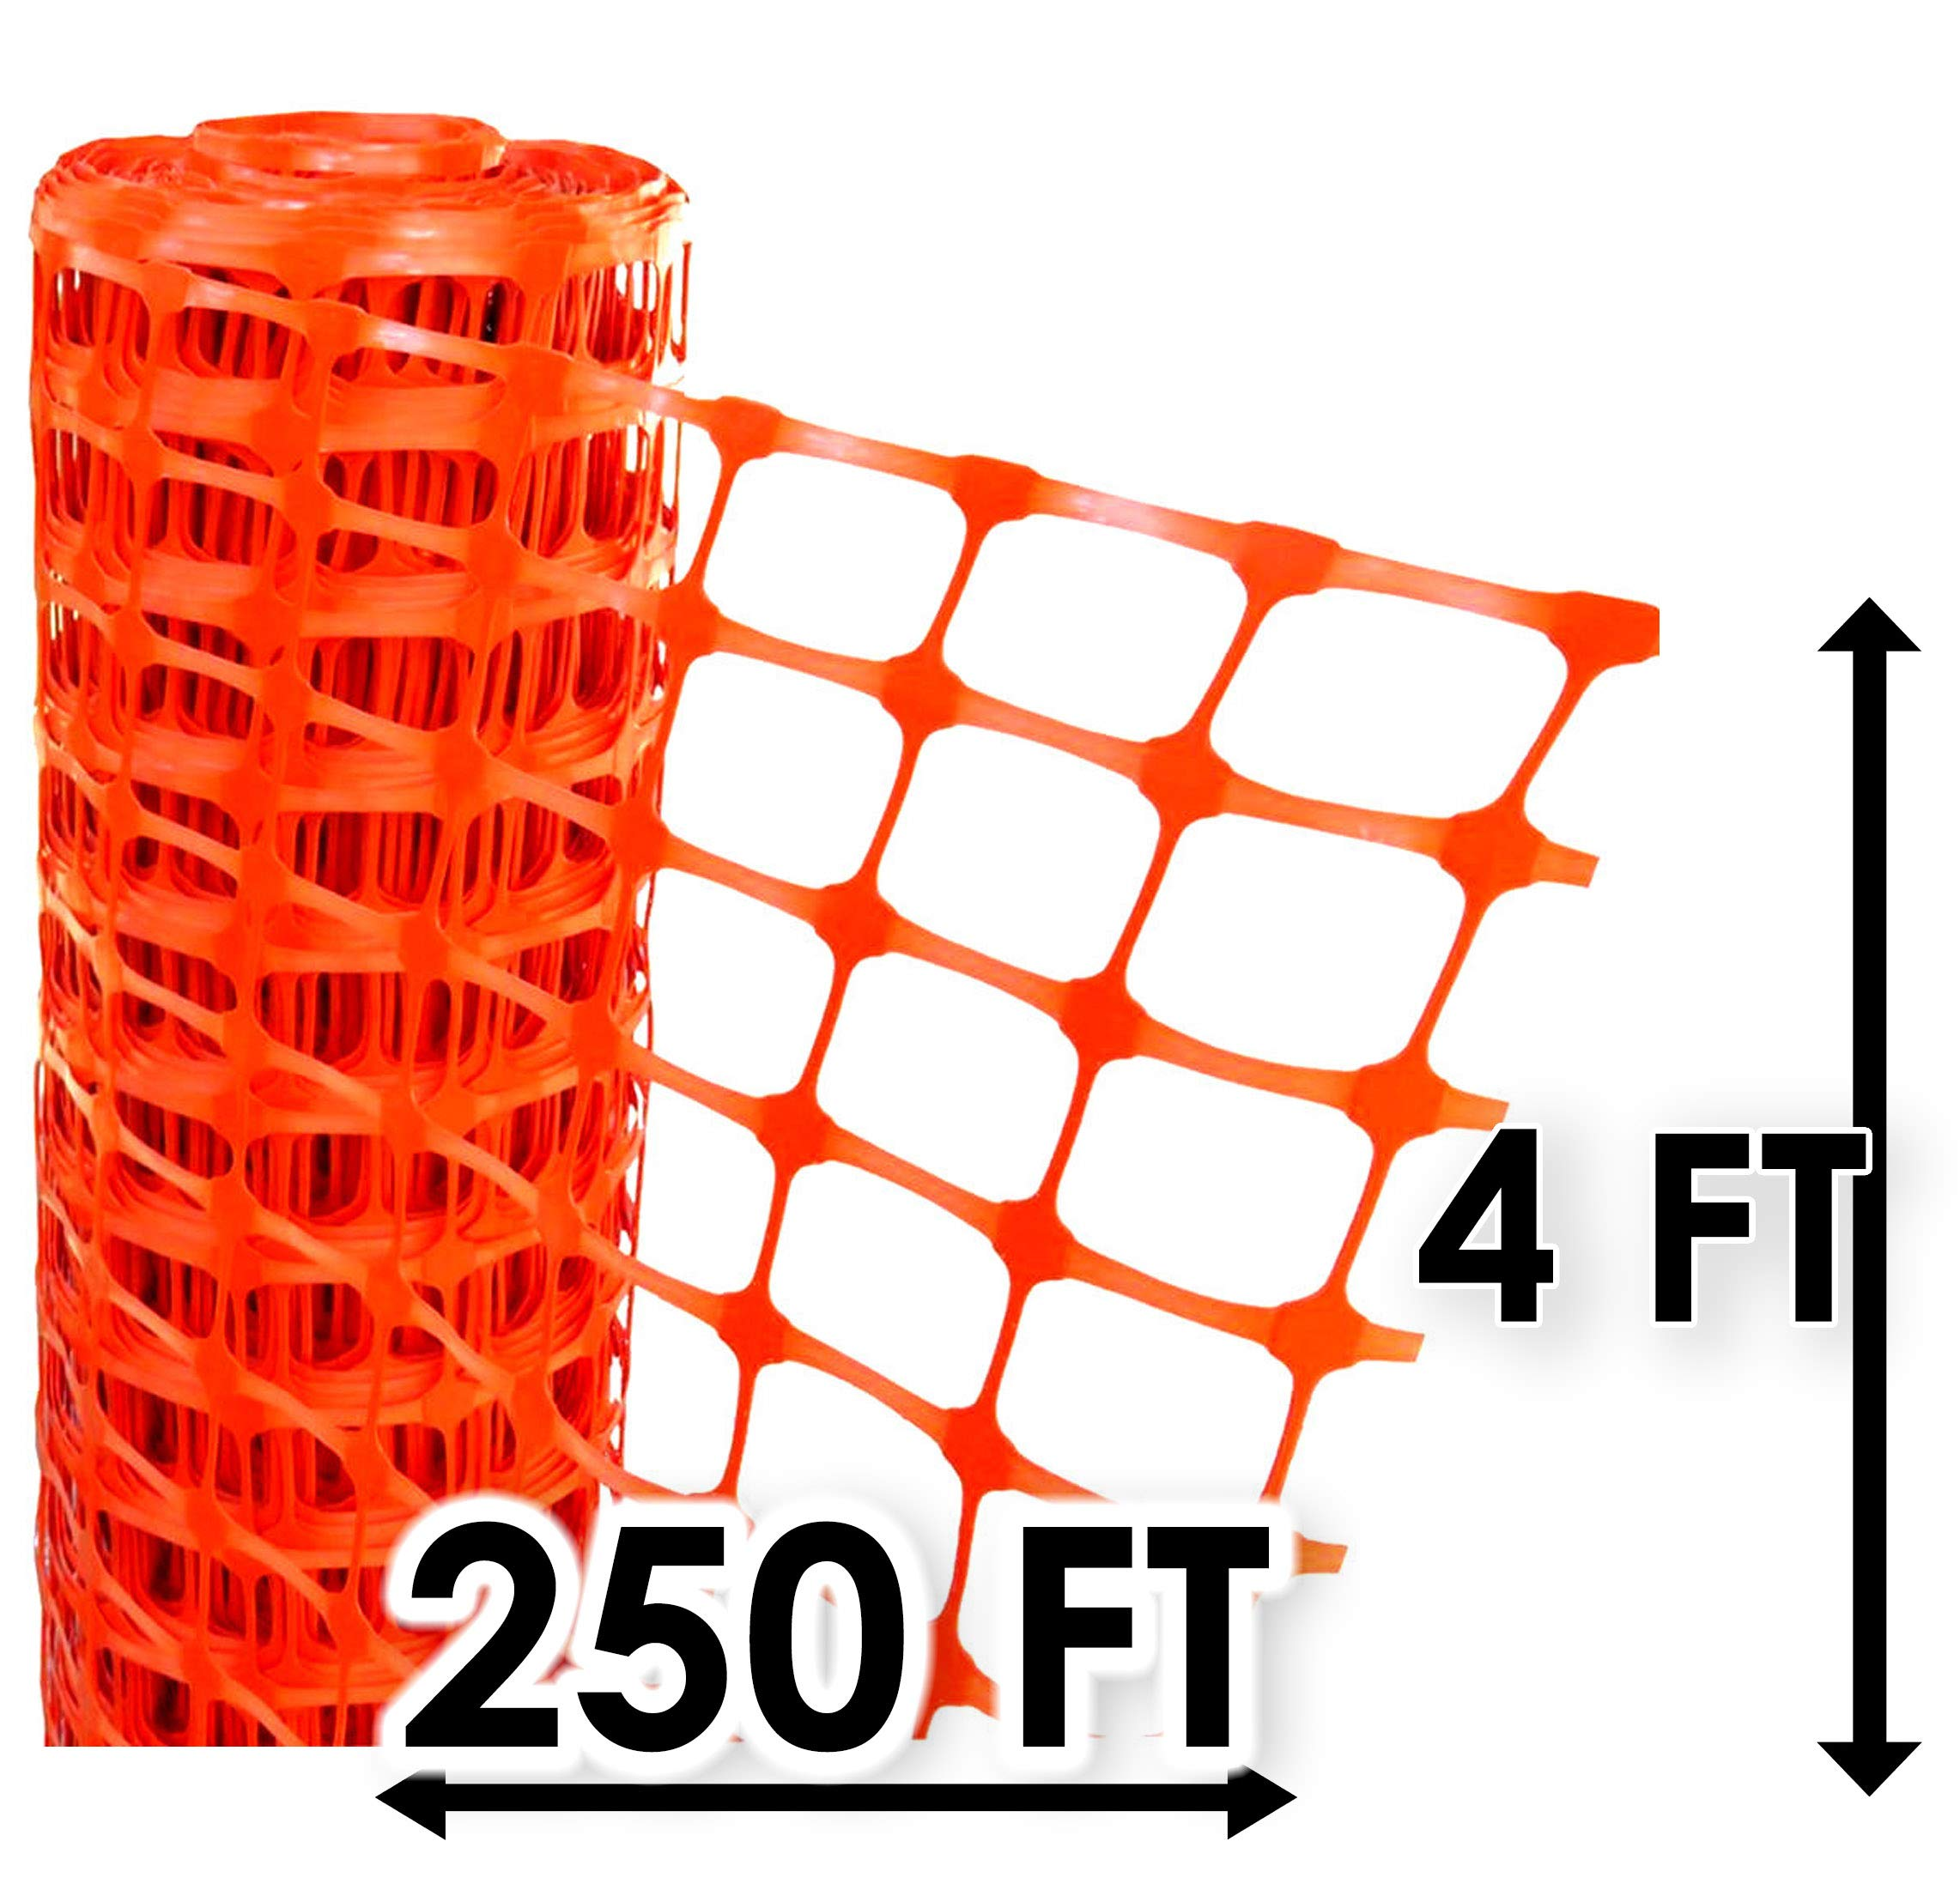 Electriduct Plastic Construction Fencing: 250 Feet Orange Safety Barrier Fence Roll by Electriduct